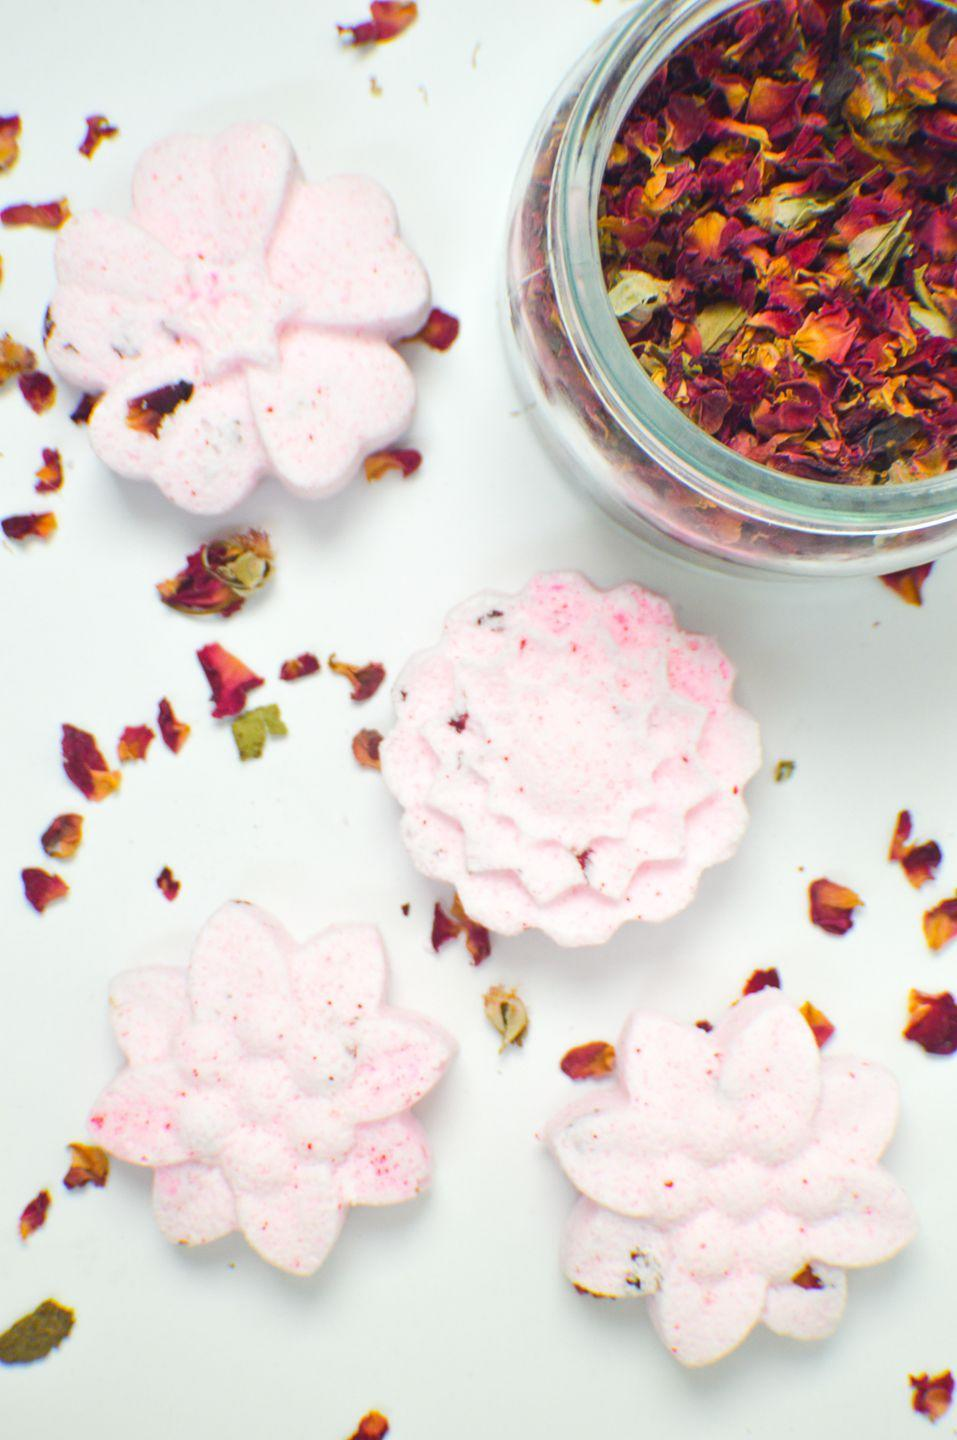 """<p>Sure, bath bombs that smell like roses are divine. But rose-infused bath bombs that look like fresh blooms are even better. </p><p><a class=""""link rapid-noclick-resp"""" href=""""https://www.amazon.com/IHUIXINHE-Fondant-Silicone-Sugarcraft-Decoration/dp/B07F63Q4B7/?tag=syn-yahoo-20&ascsubtag=%5Bartid%7C10055.g.2412%5Bsrc%7Cyahoo-us"""" rel=""""nofollow noopener"""" target=""""_blank"""" data-ylk=""""slk:SHOP FLOWER MOLDS"""">SHOP FLOWER MOLDS</a></p><p><em><a href=""""https://www.clubcrafted.com/2016/08/25/diy-floral-bath-bombs/"""" rel=""""nofollow noopener"""" target=""""_blank"""" data-ylk=""""slk:Get the tutorial at Club Crafted »"""" class=""""link rapid-noclick-resp"""">Get the tutorial at Club Crafted »</a></em> </p>"""